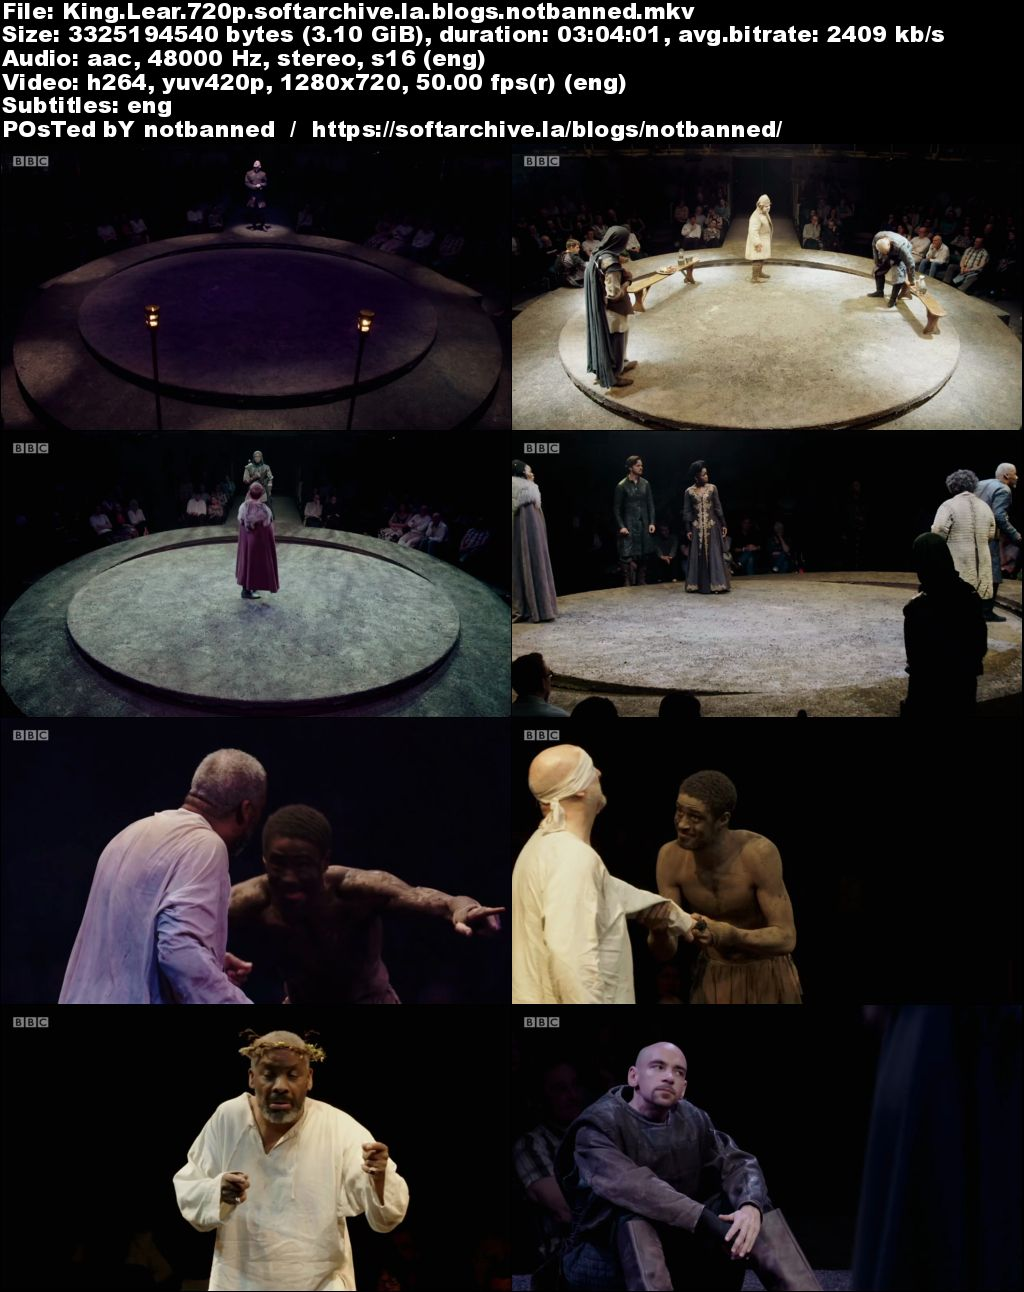 a comparison of king lear bbc A comparison of compassion and identity in king lear and coriolanus shakespeare's lear and coriolanus have a great deal in common both are first seen as proud, stubborn rulers unwilling to compromise this causes lear to lose his kingdom to his scheming daughters, while coriolanus is.